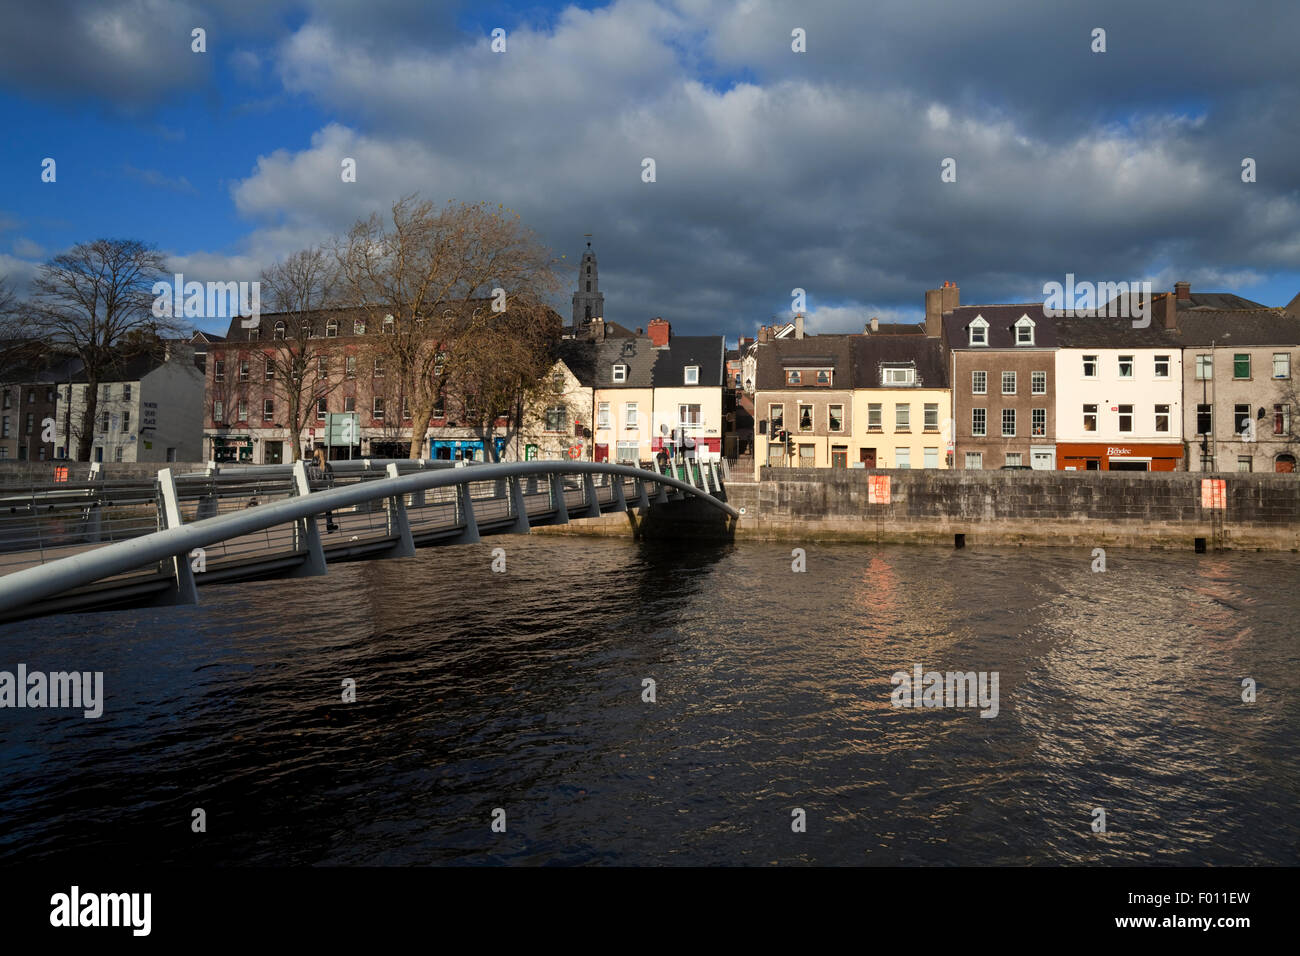 The Millenium Foot Bridge with St Annes Church Behind, Over the River Lee, Cork City, Ireland - Stock Image